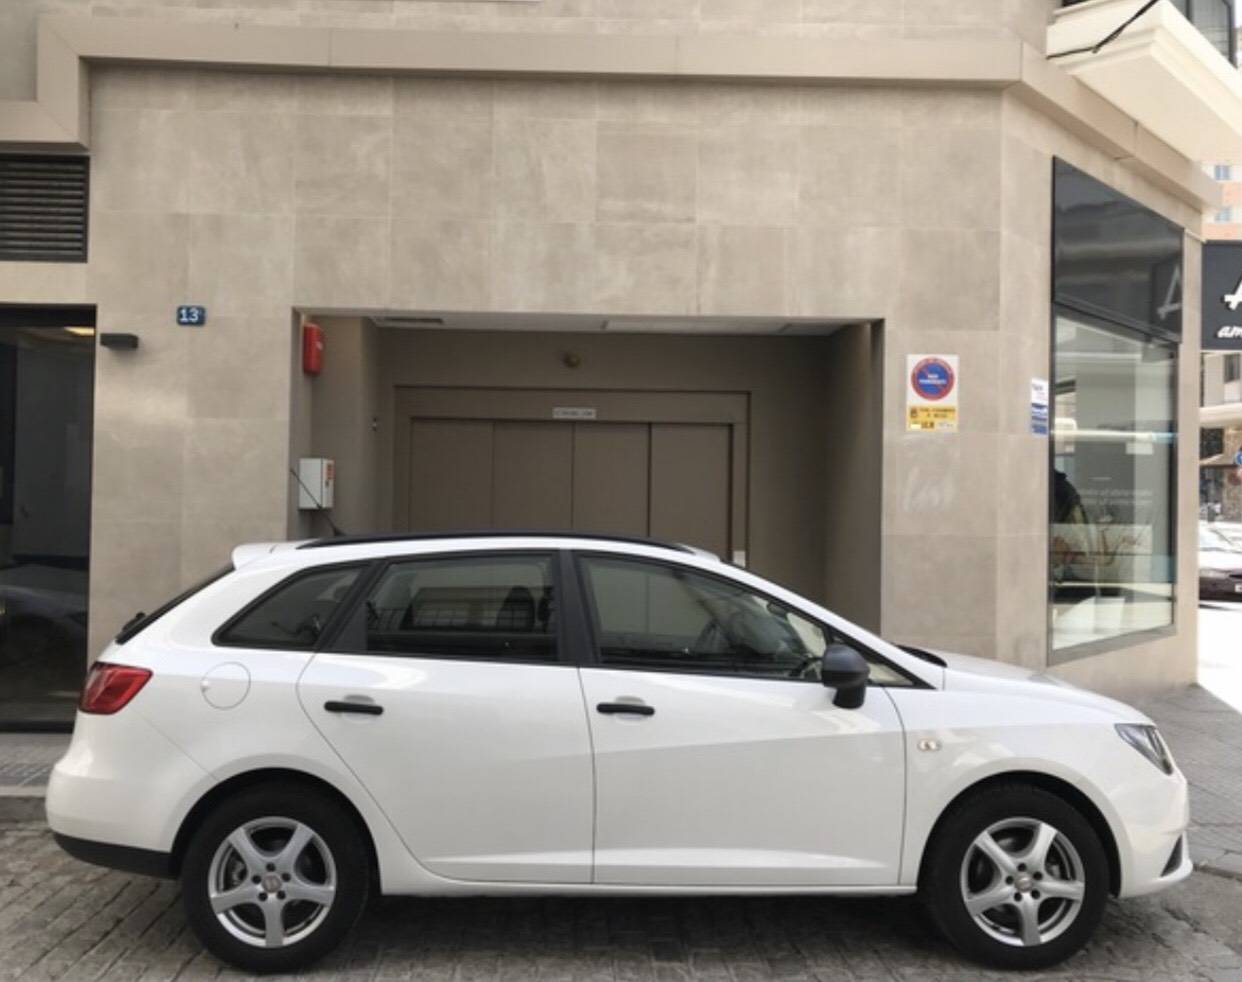 Buy SEAT IBIZA ST 2016 1.2 TSI 90CV second hand car in Málaga. With the guarantee of Larios Rental